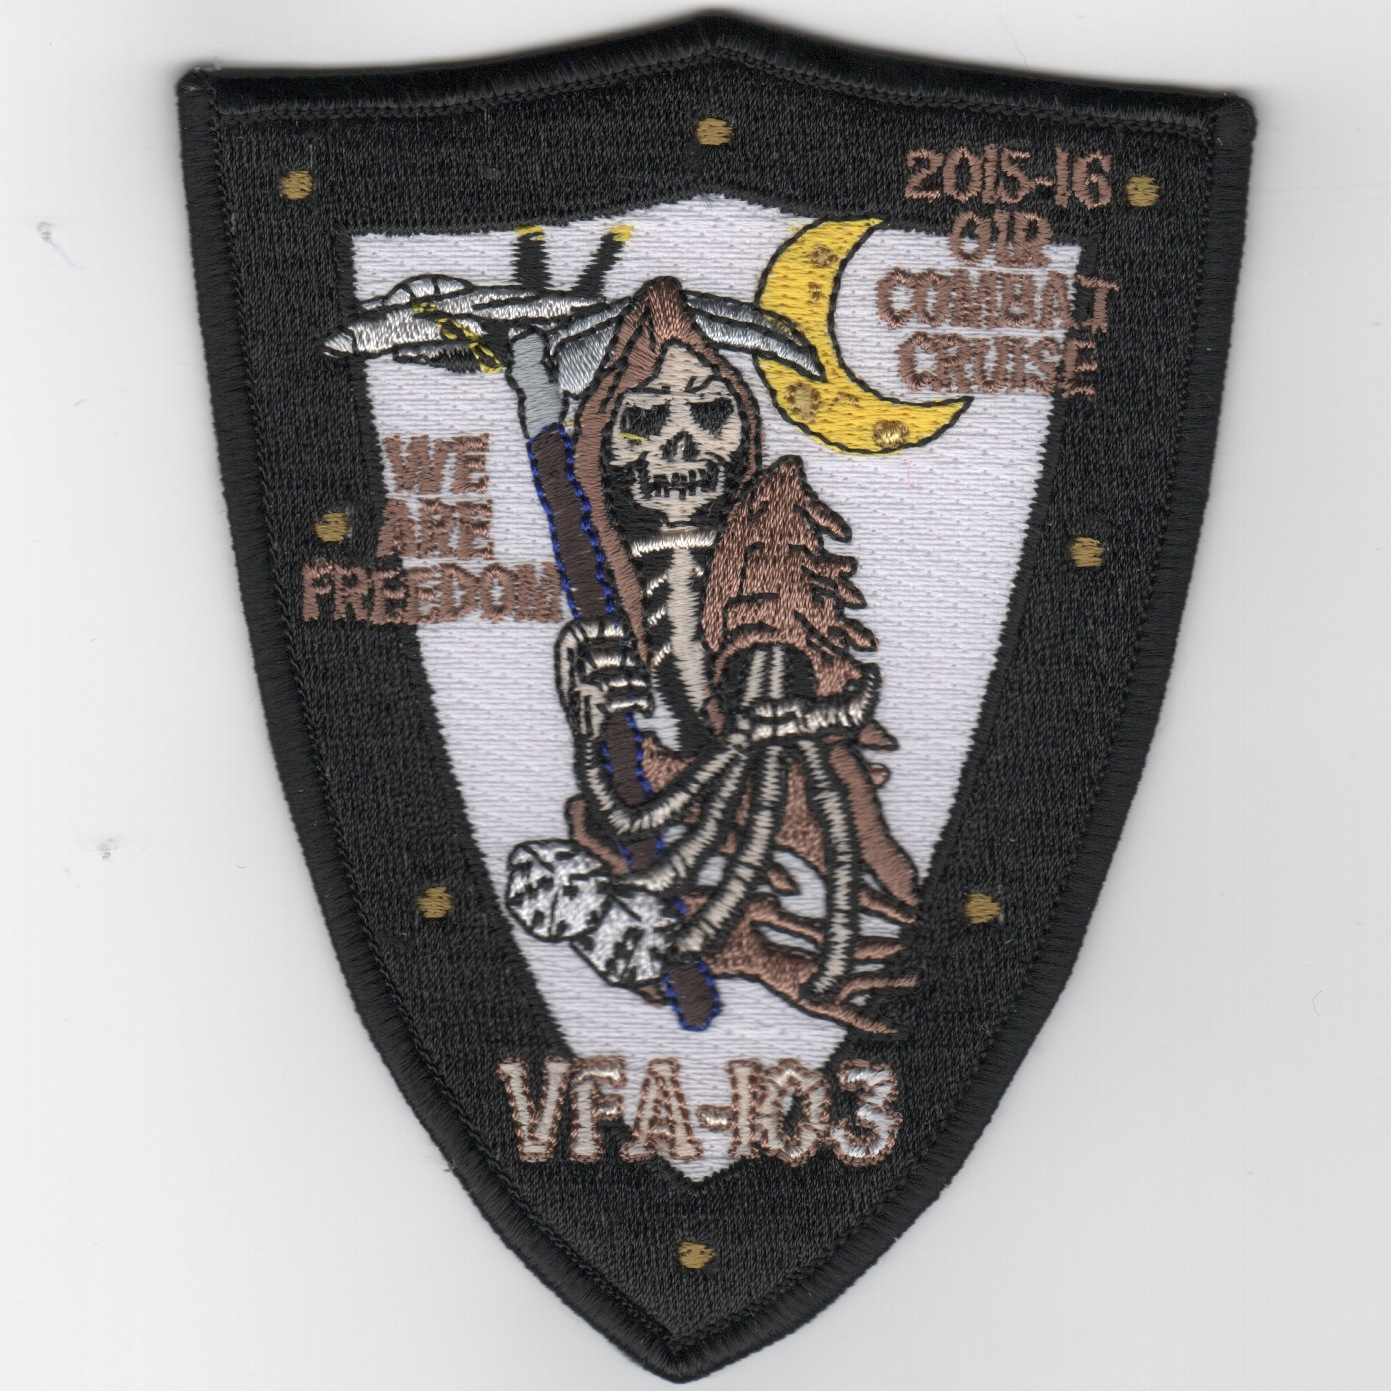 VFA-103 2015-16 'OIF Combat Cruise' Patch